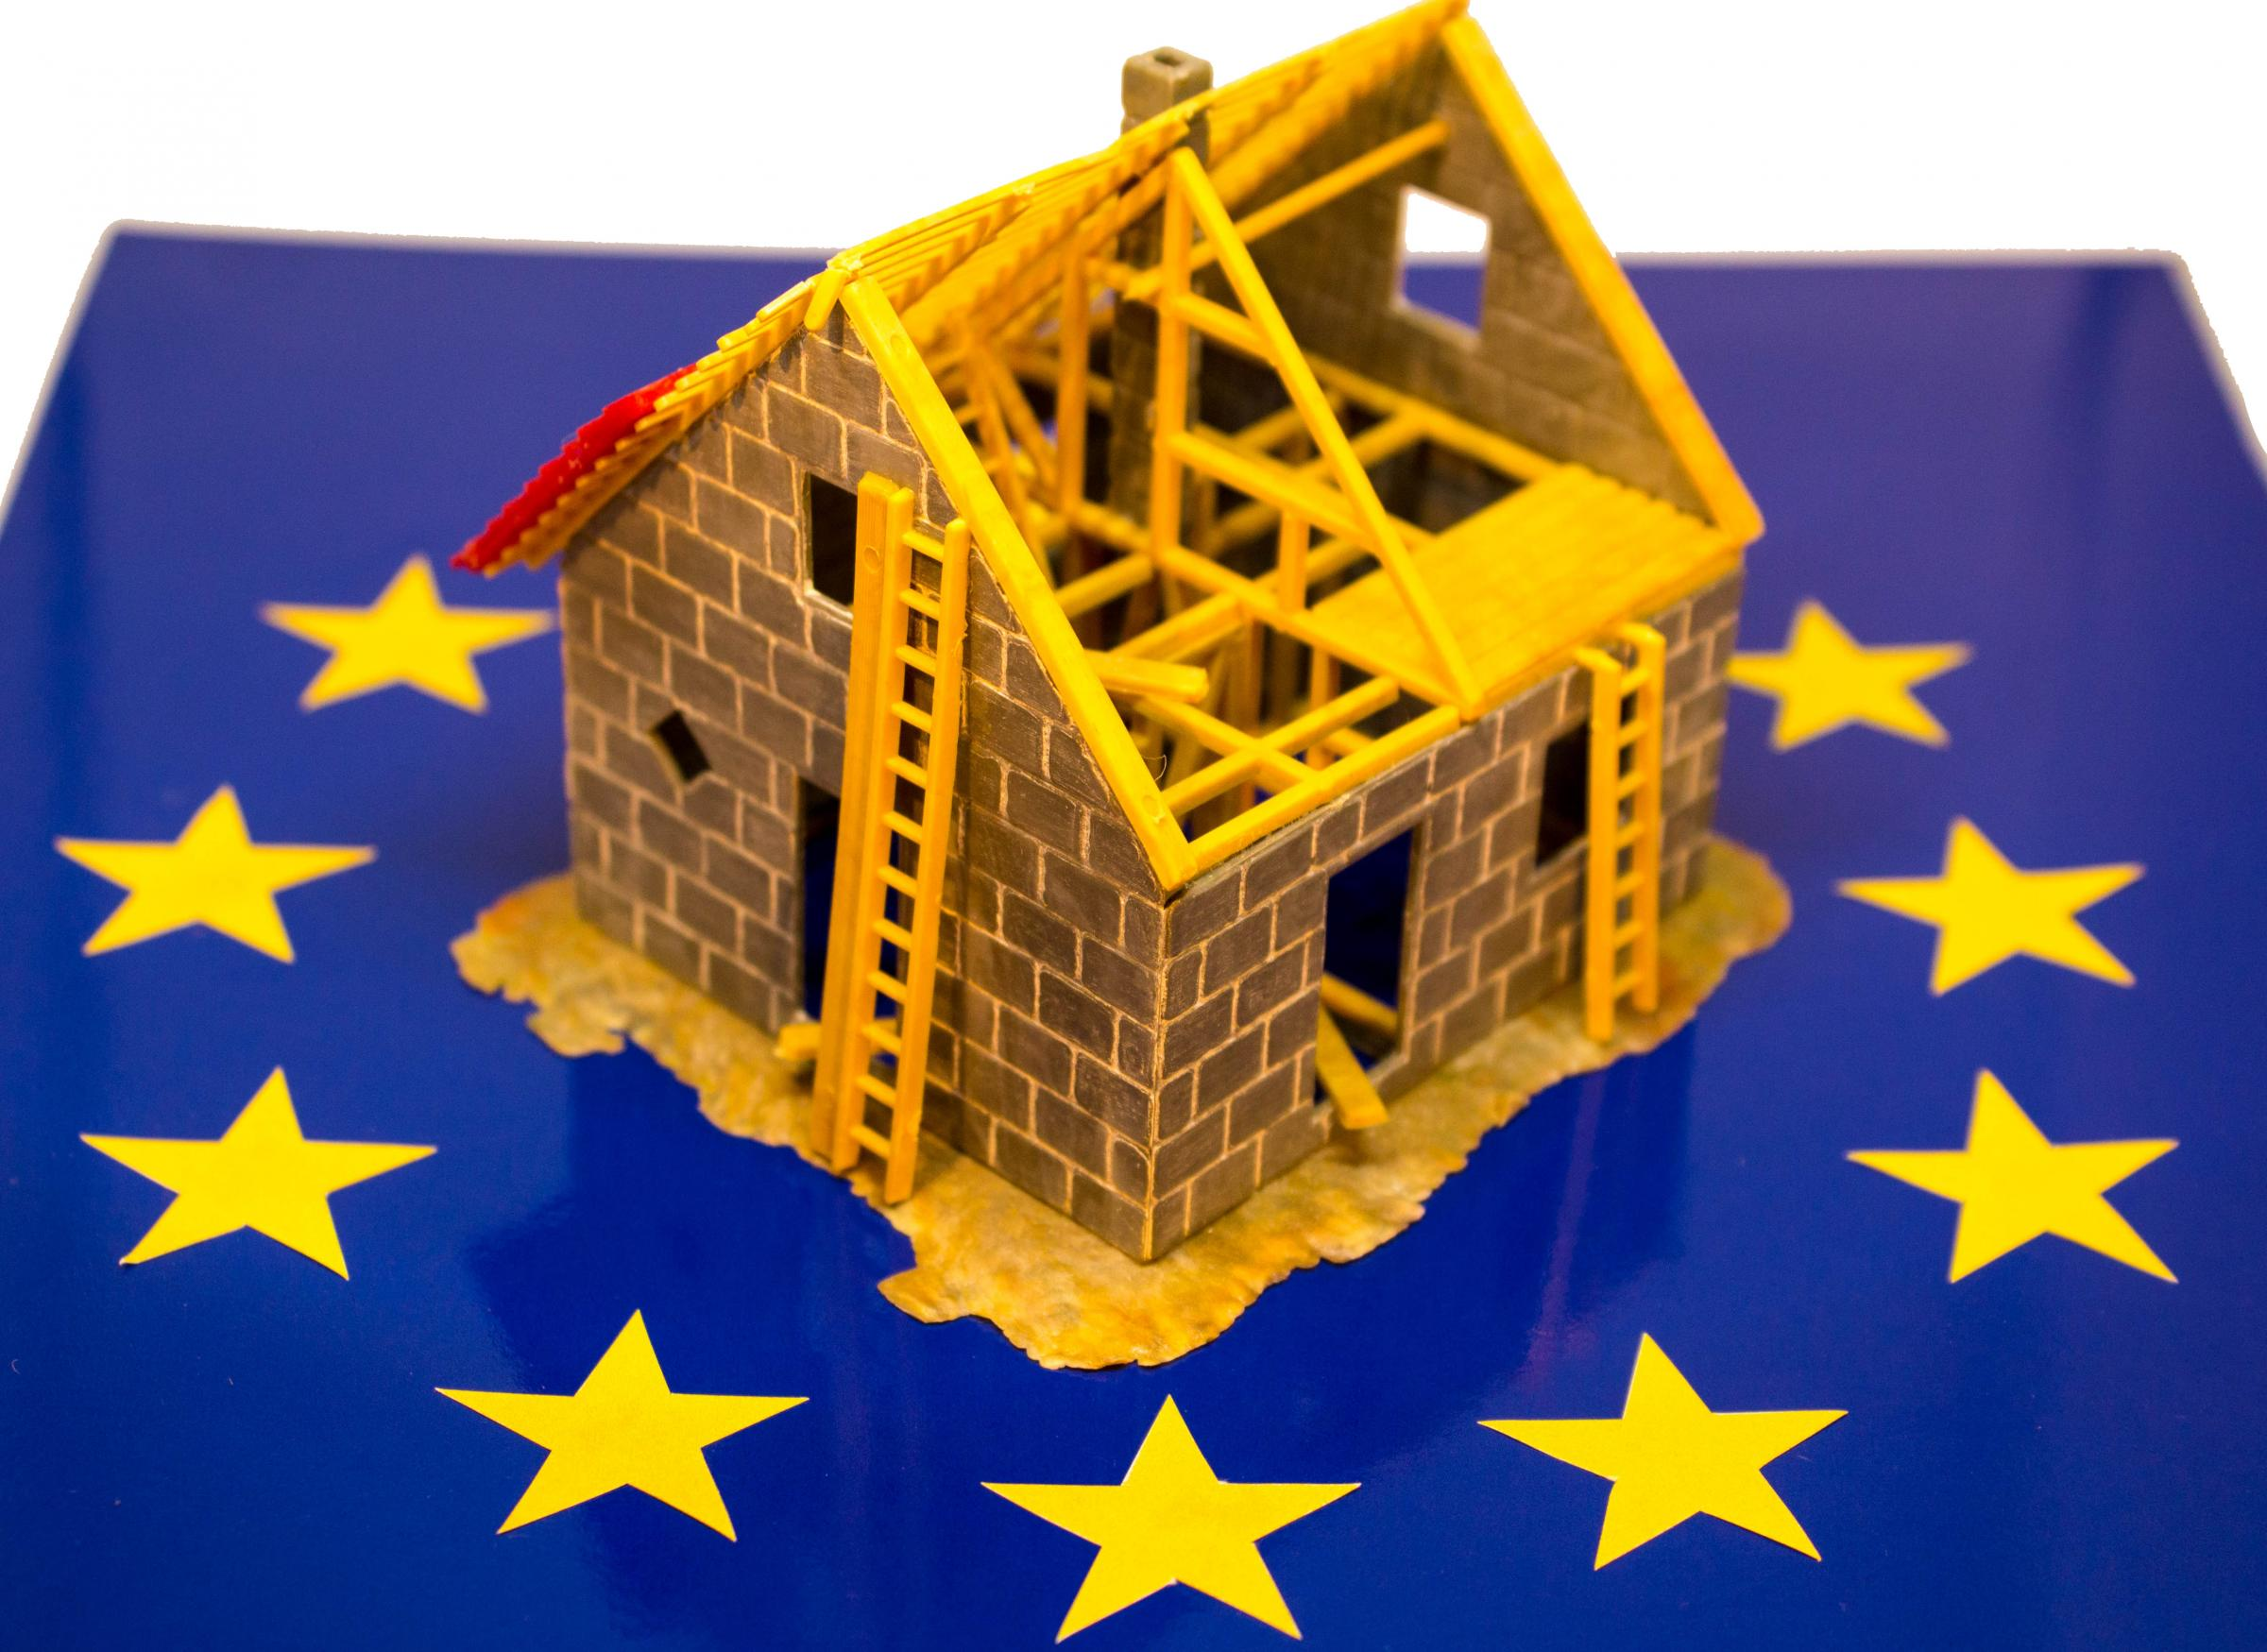 Concerns are rising for EU workers in the building trade